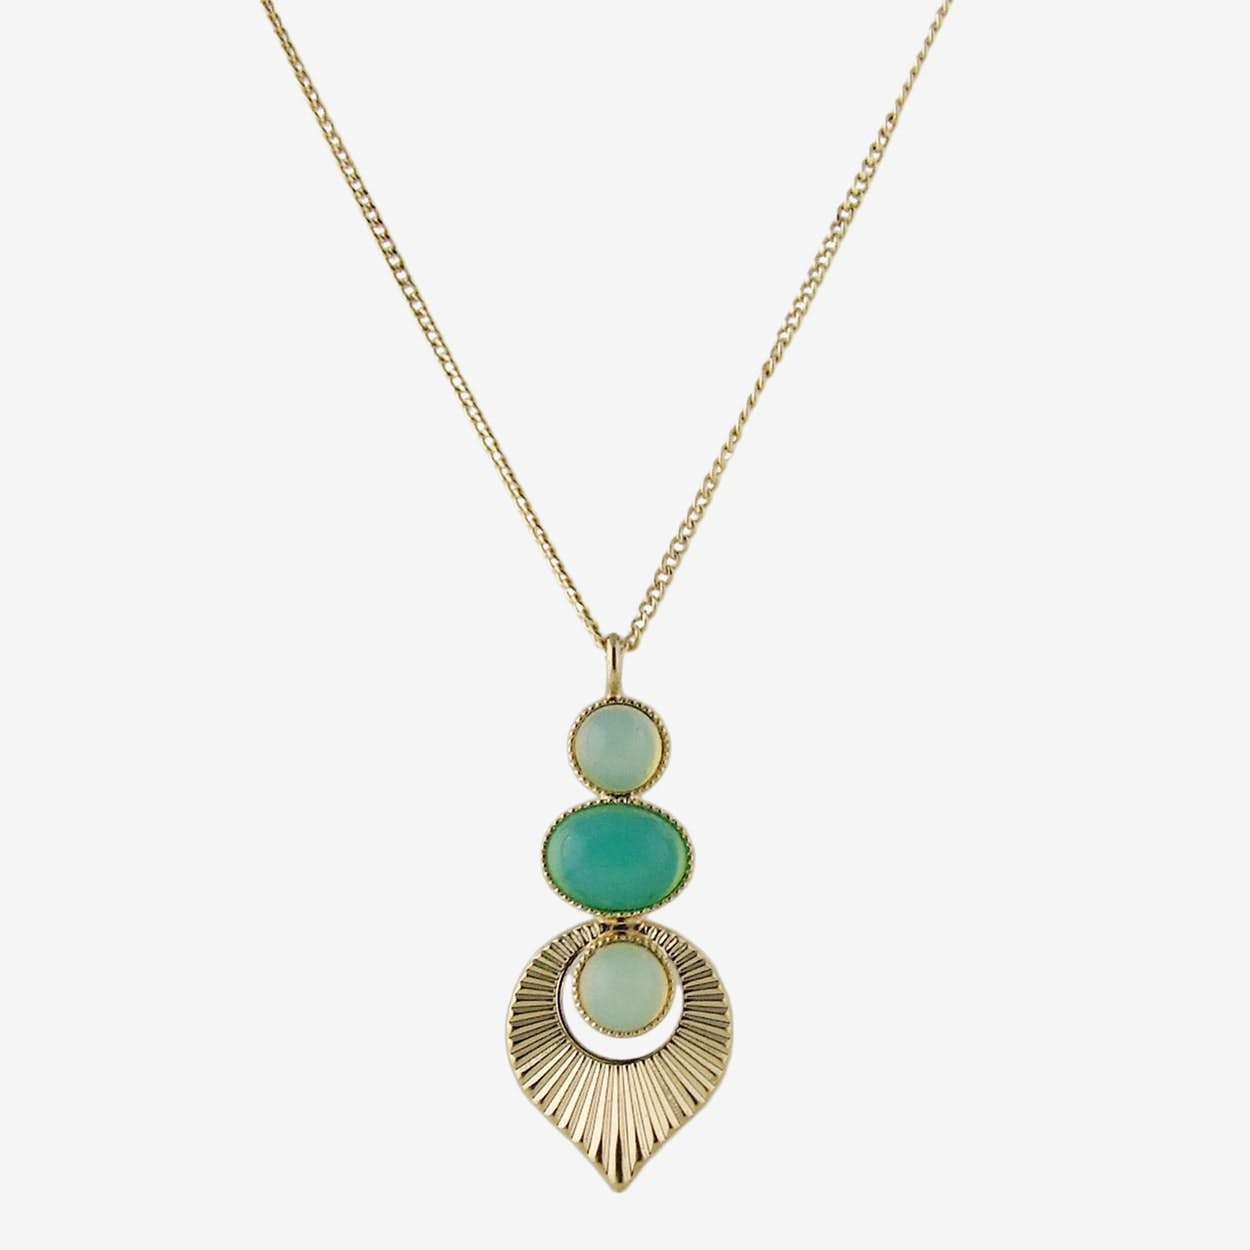 Gold Art Deco Style Pendant Necklace in Mint and Yellow - Aliquo